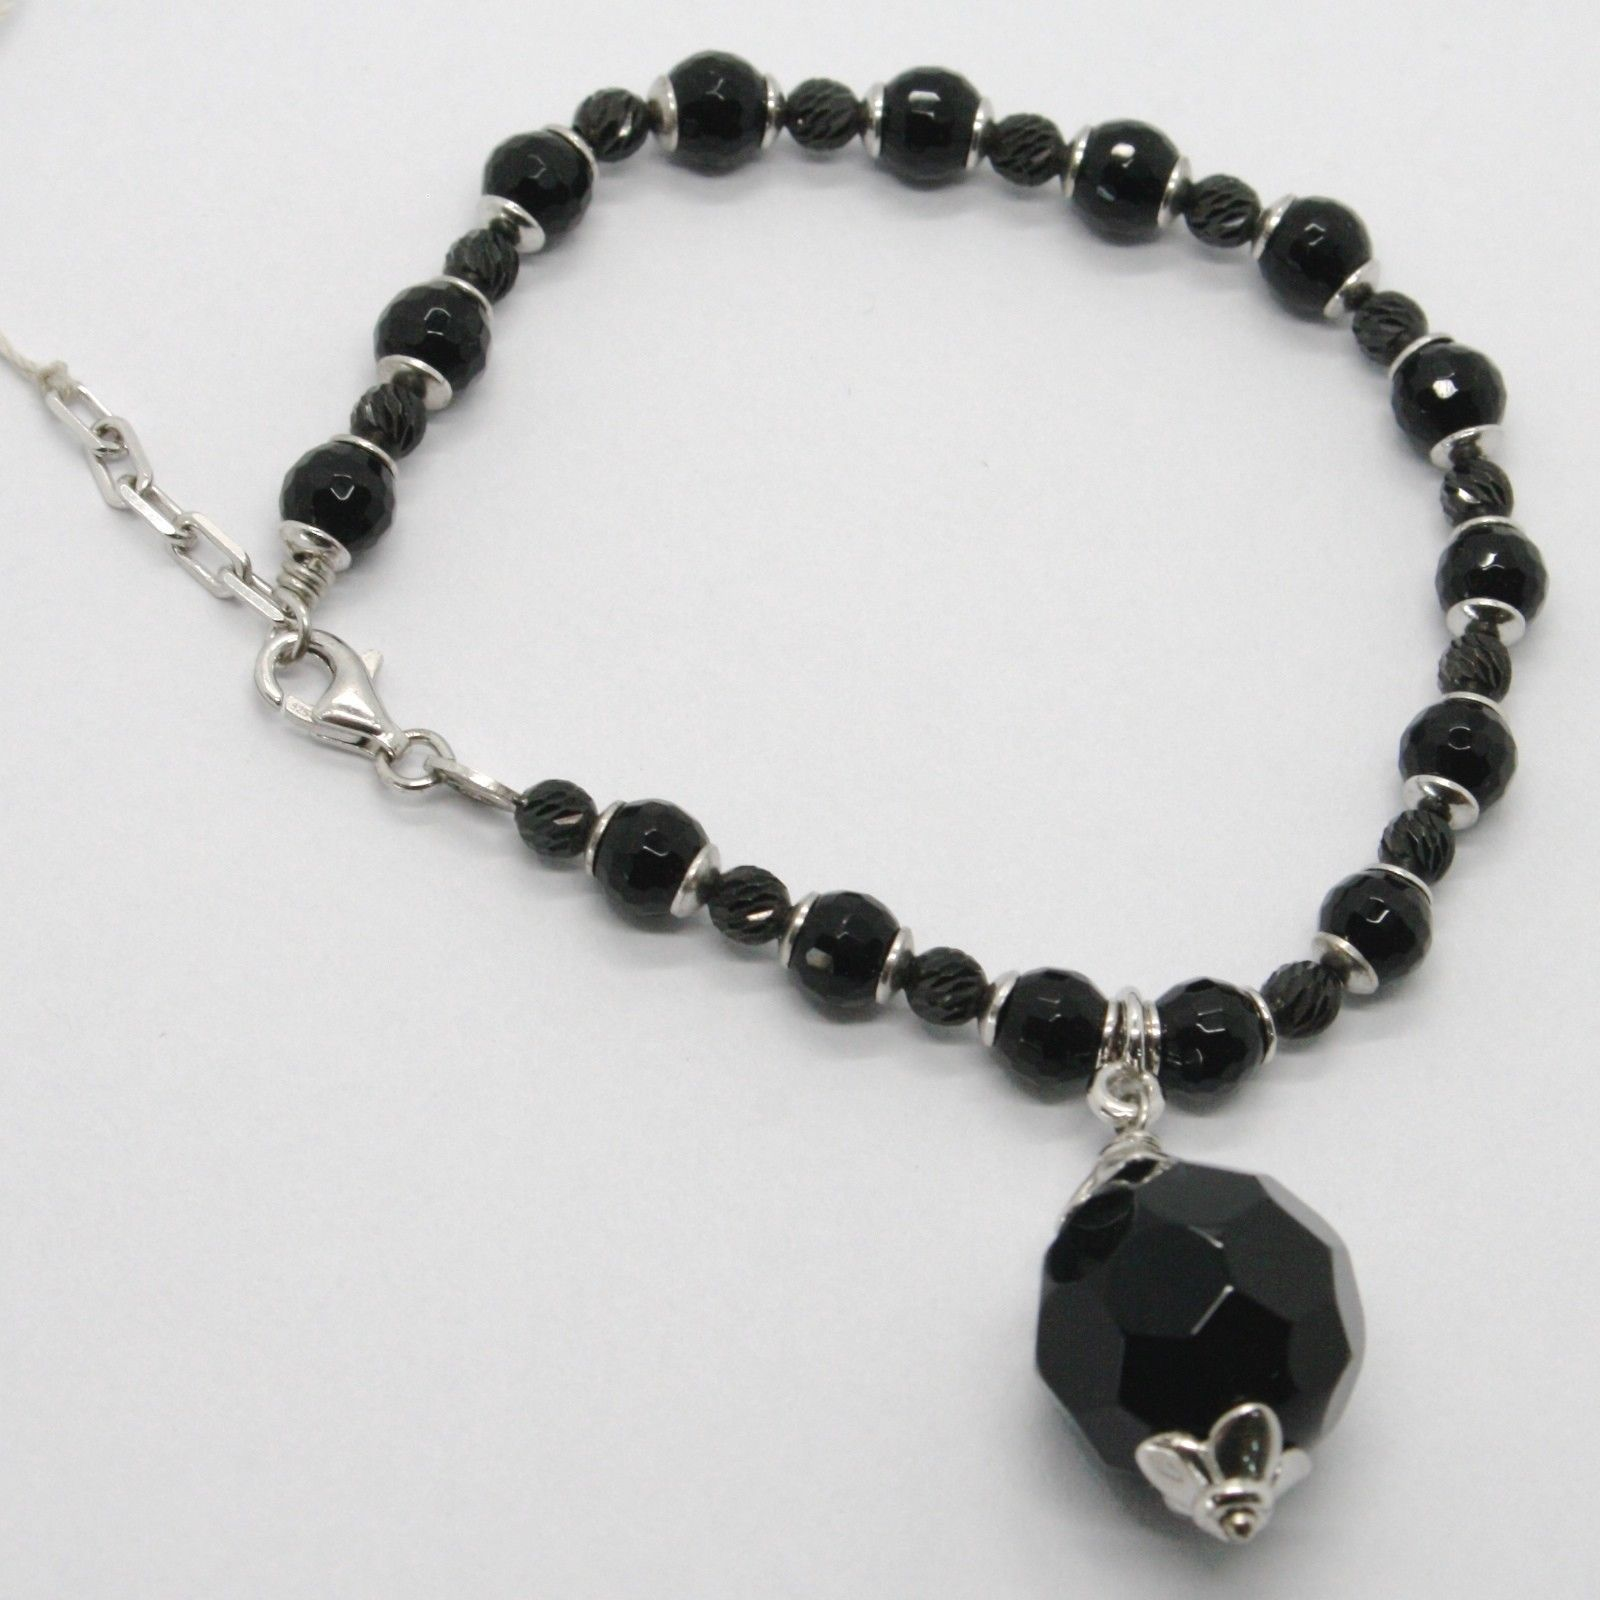 925 STERLING SILVER BRACELET BIG BLACK ONYX FACETED BALLS & NUGGET PENDANT